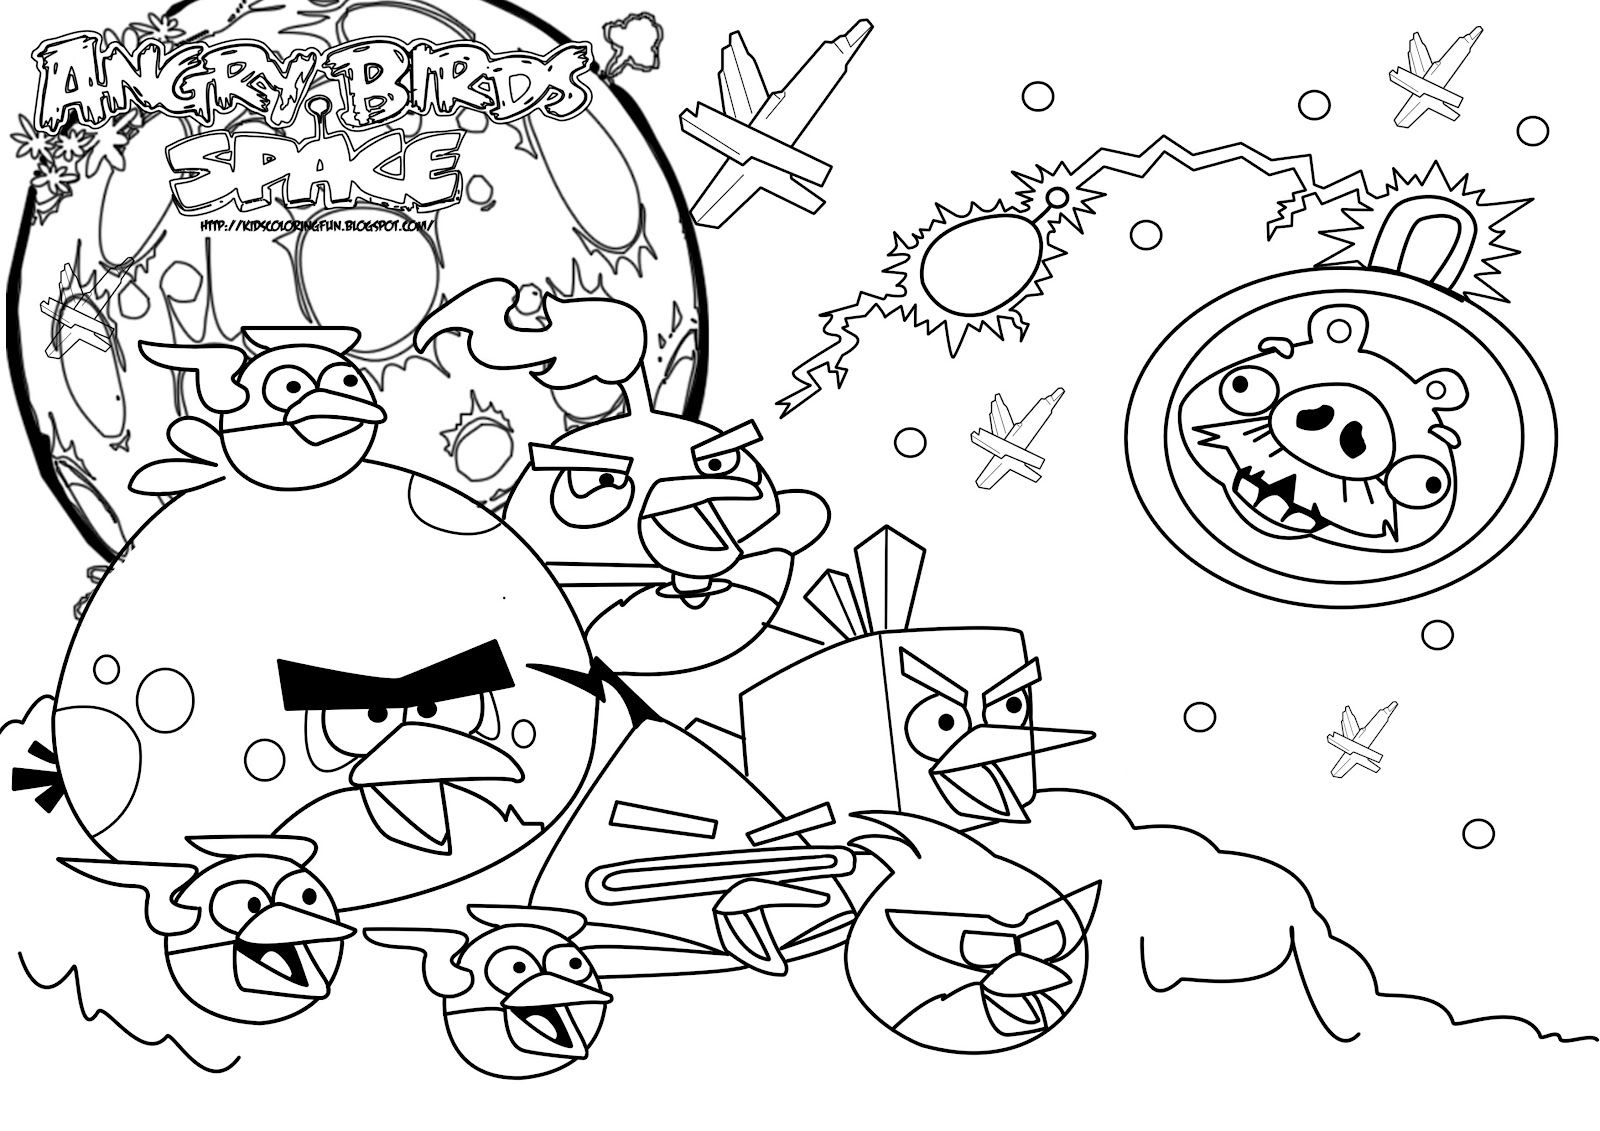 Angry Birds Colouring Pages Angry Bird Coloring Pages Prints And Colors Bird Coloring Pages Space Coloring Pages Unicorn Coloring Pages